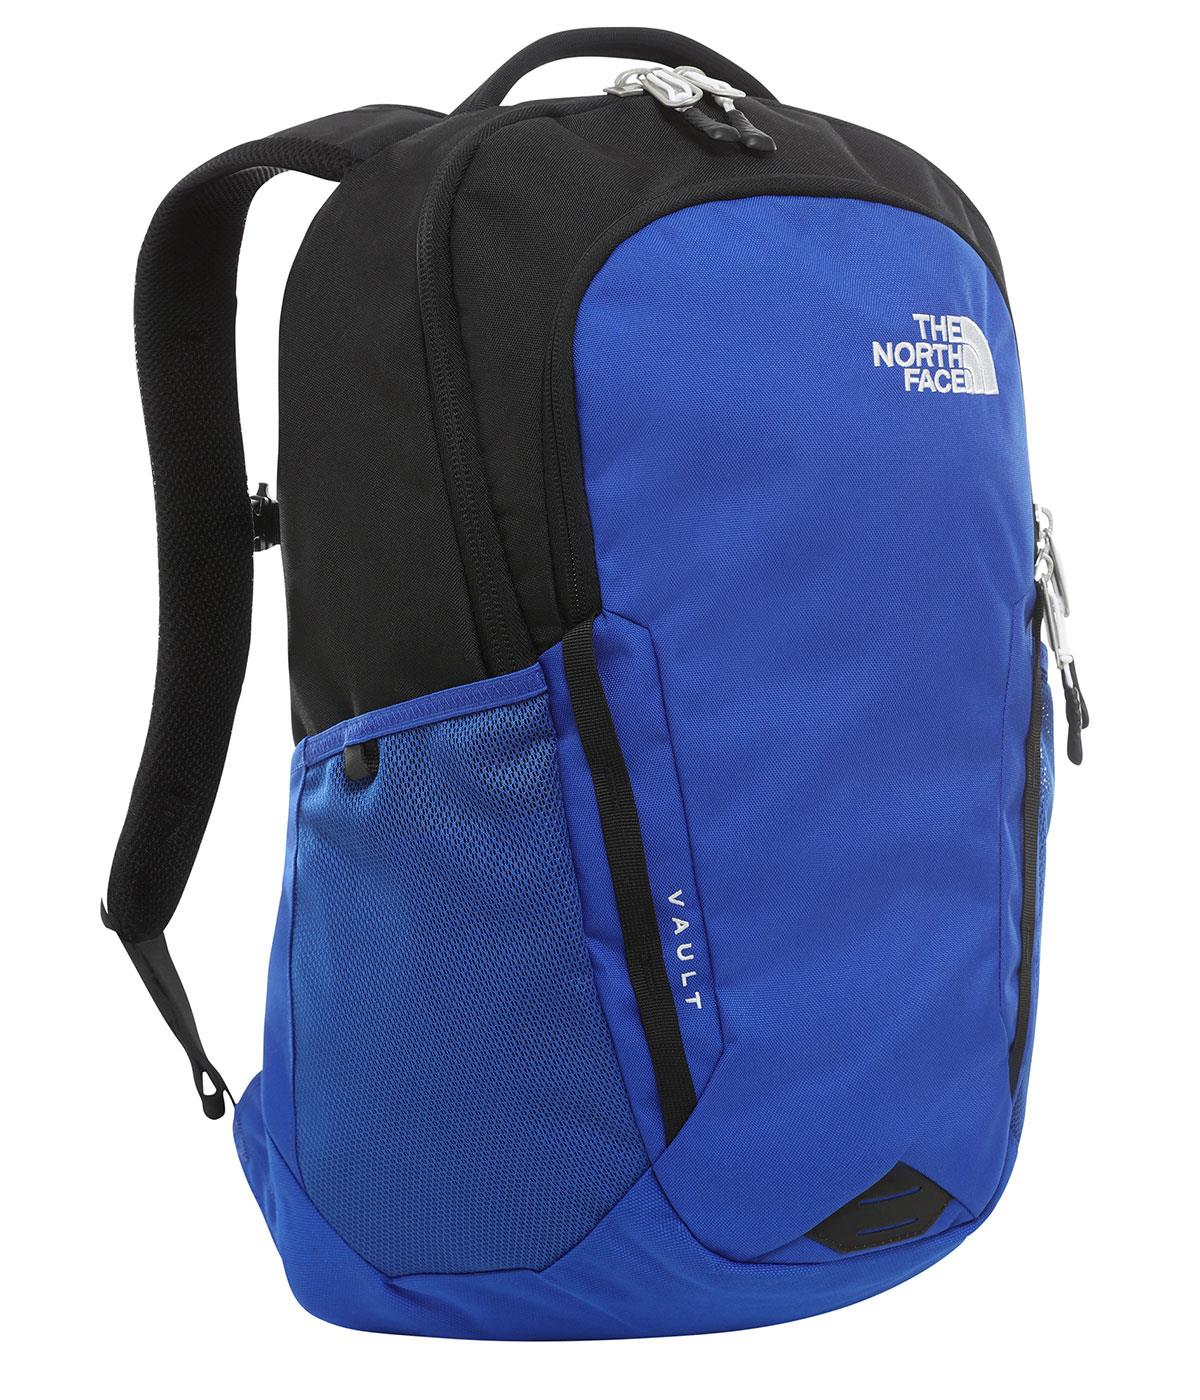 The North Face Vault Nf0A3Kv9Ef11